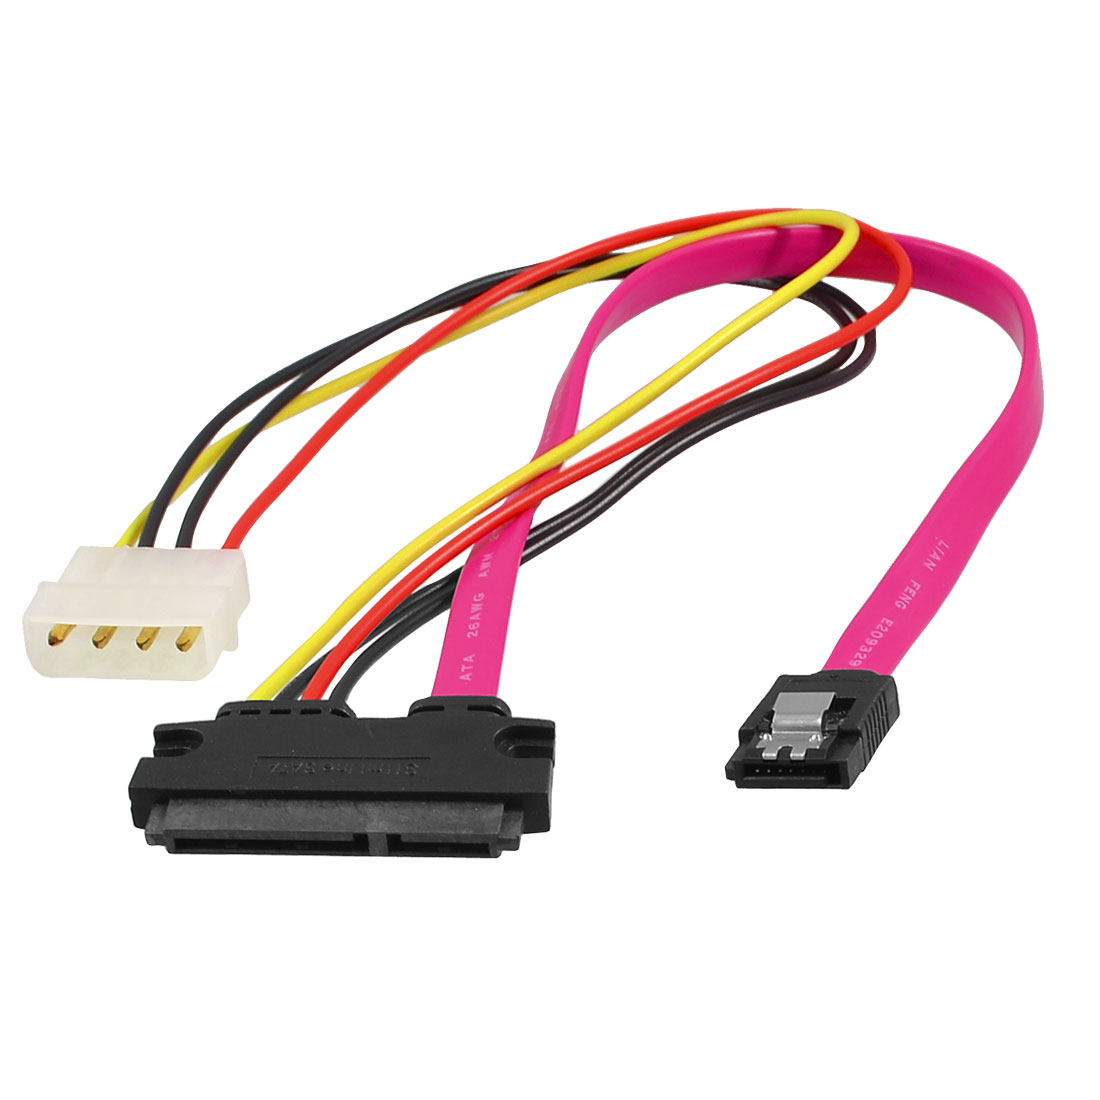 Slimline SATA 7+15P to SATA 7-pin IDE 4 Pin Splitter Power Cable